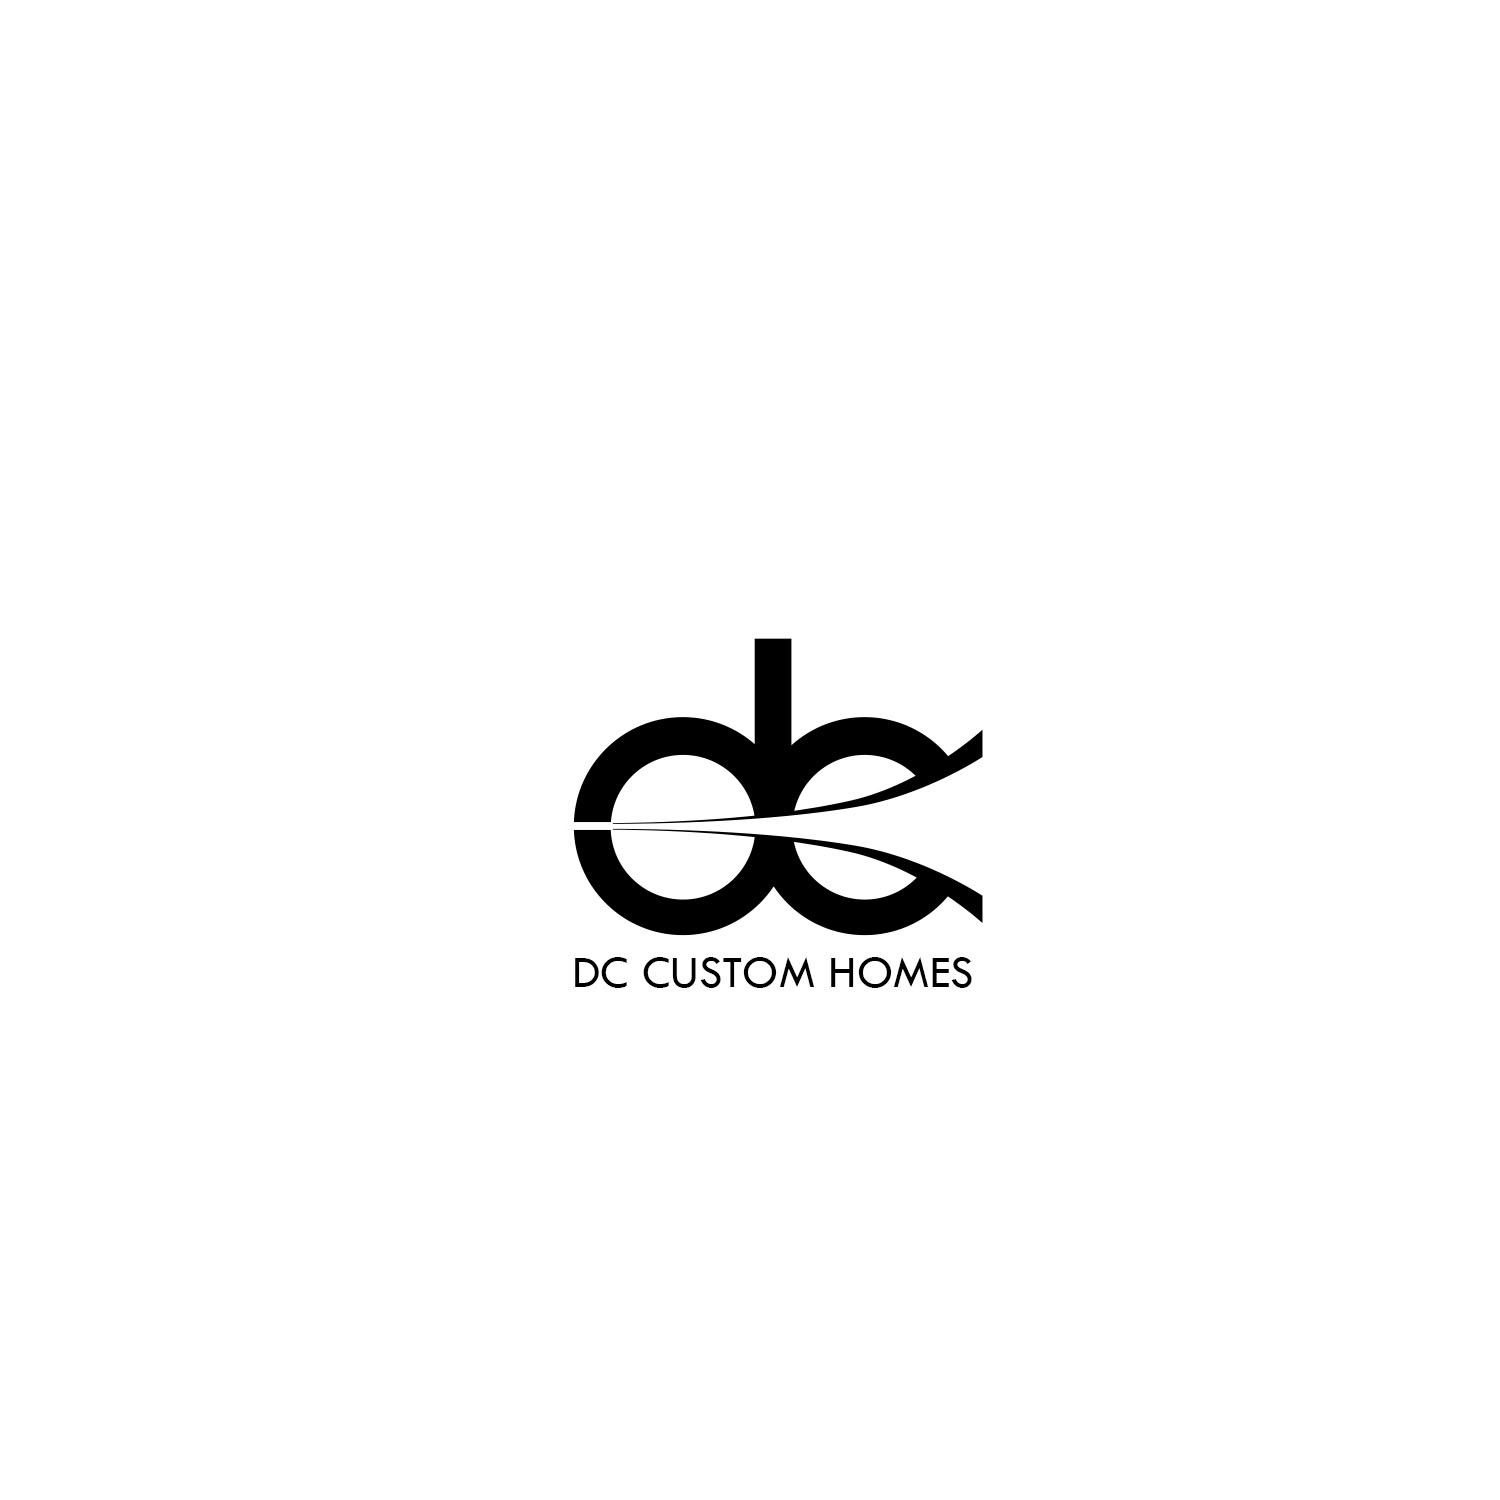 Logo Design by Private User - Entry No. 145 in the Logo Design Contest Creative Logo Design for DC Custom Homes.